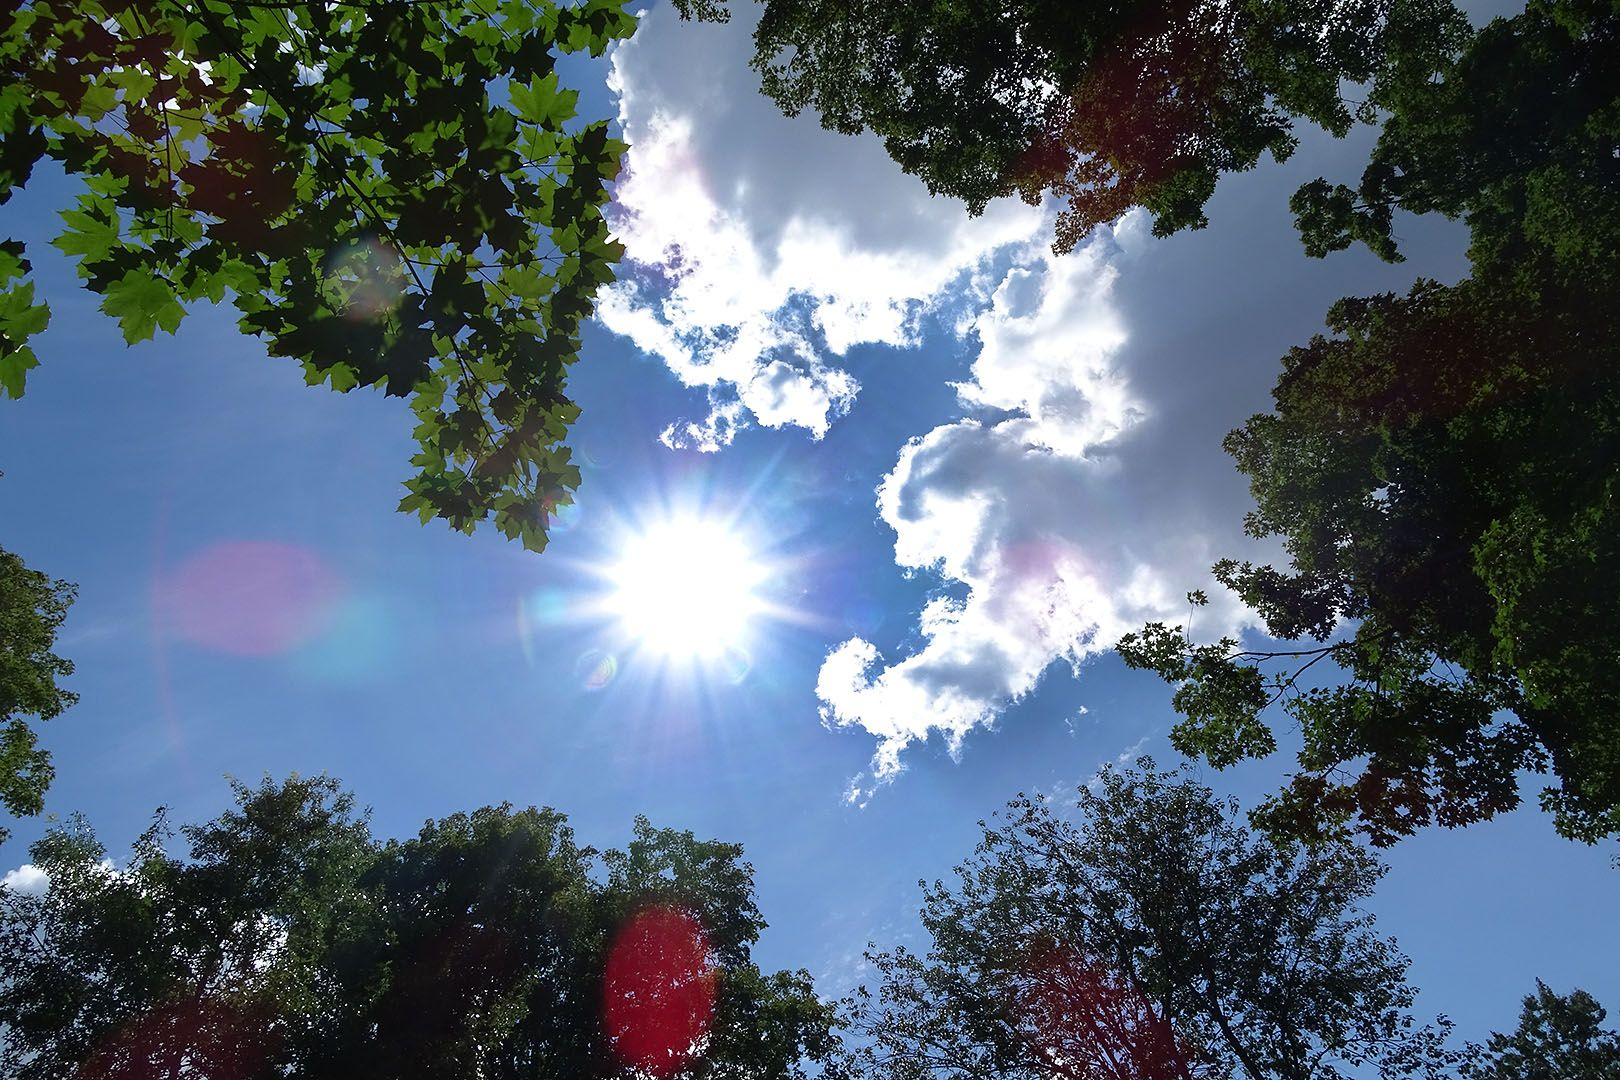 Now there's a hole in the canopy where the sun comes in. (Jay Burns / Bates College)